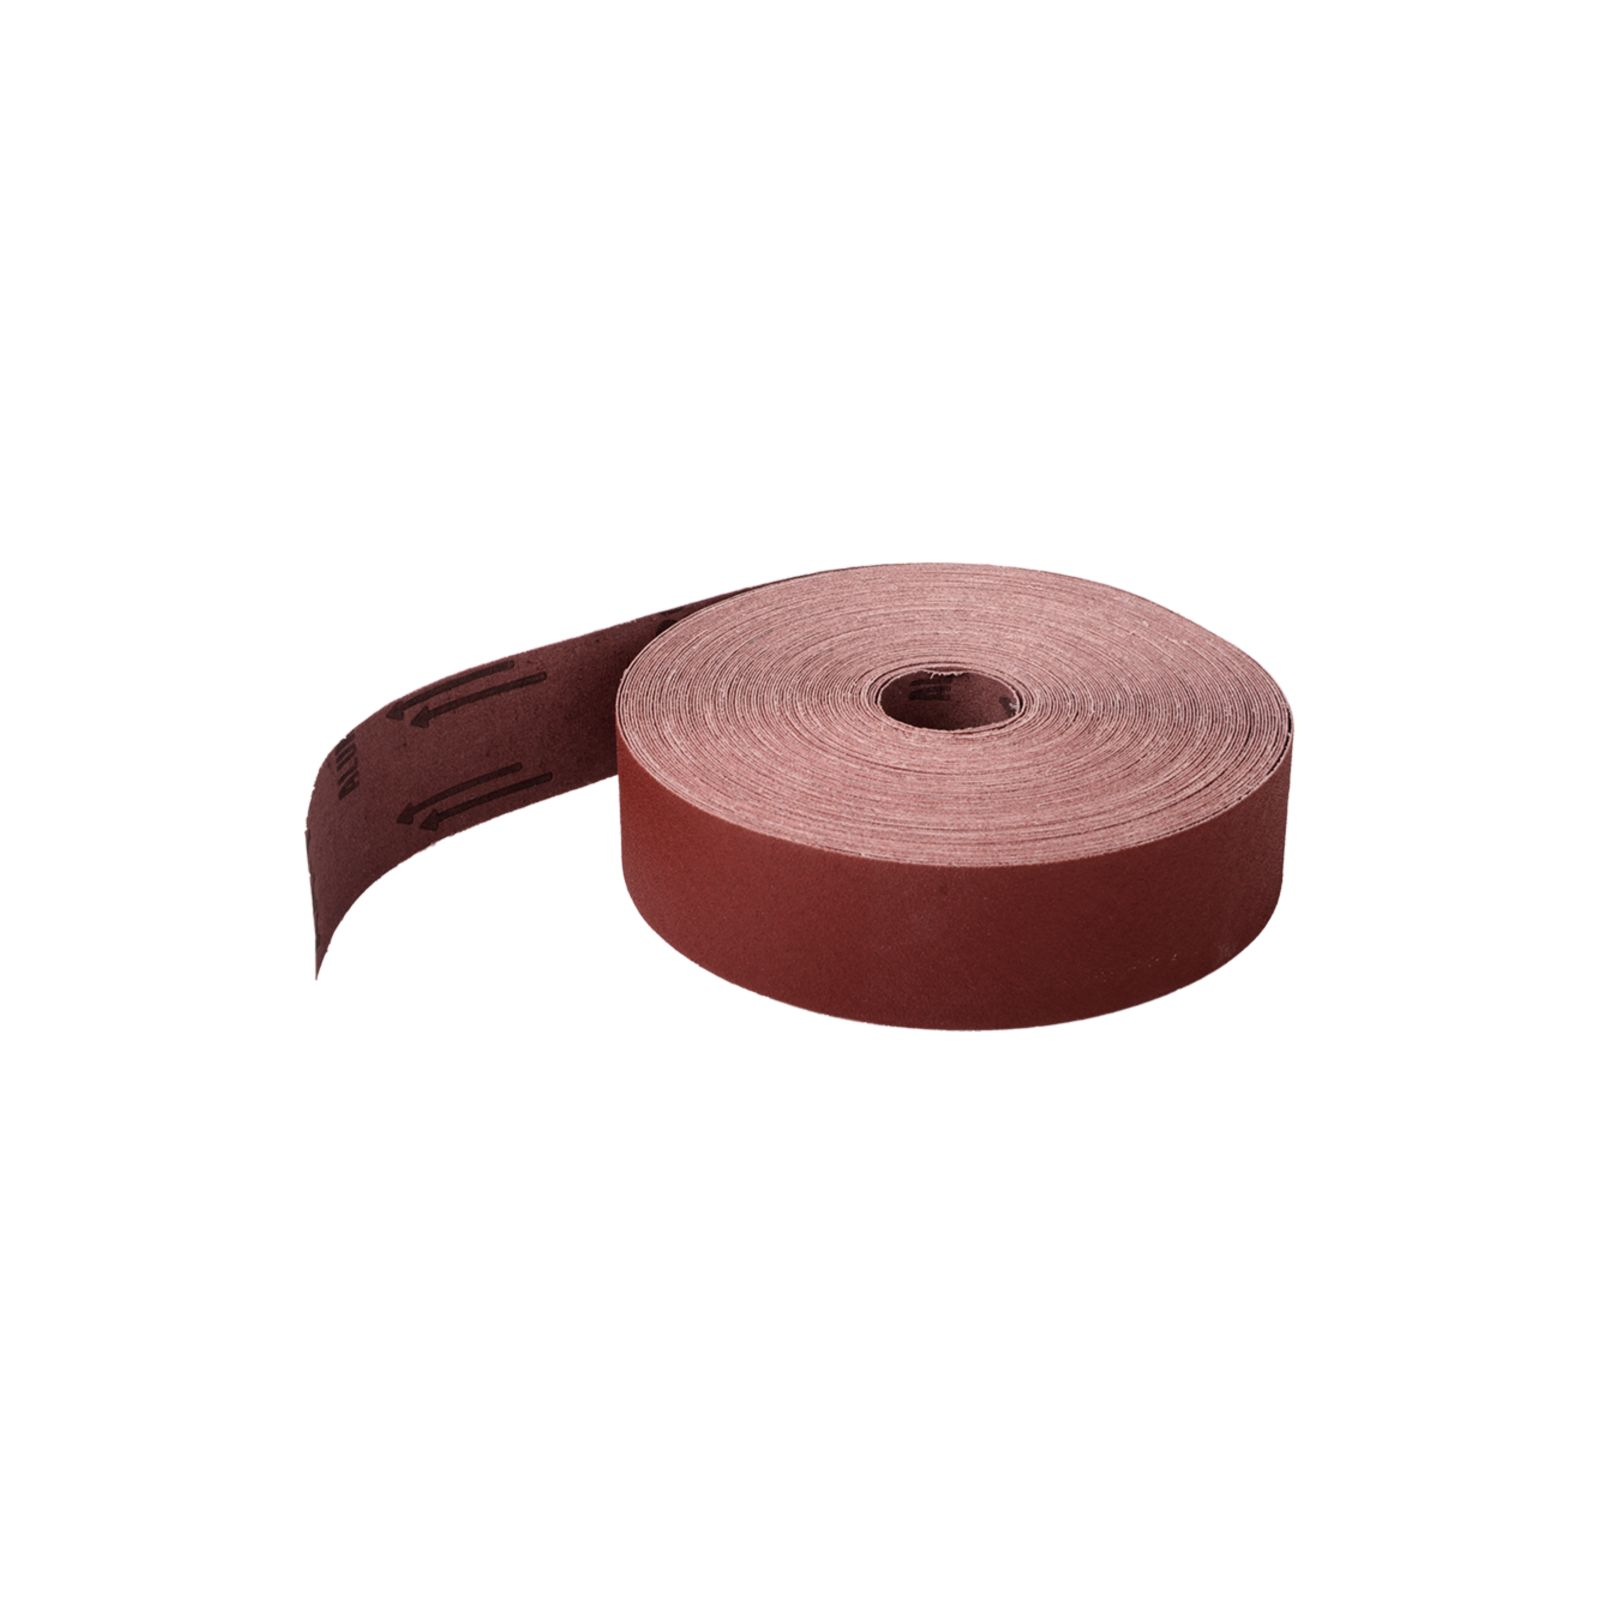 DiversiTech SC-25 - Abrasive Cloth, 1-1/2X25 Yards